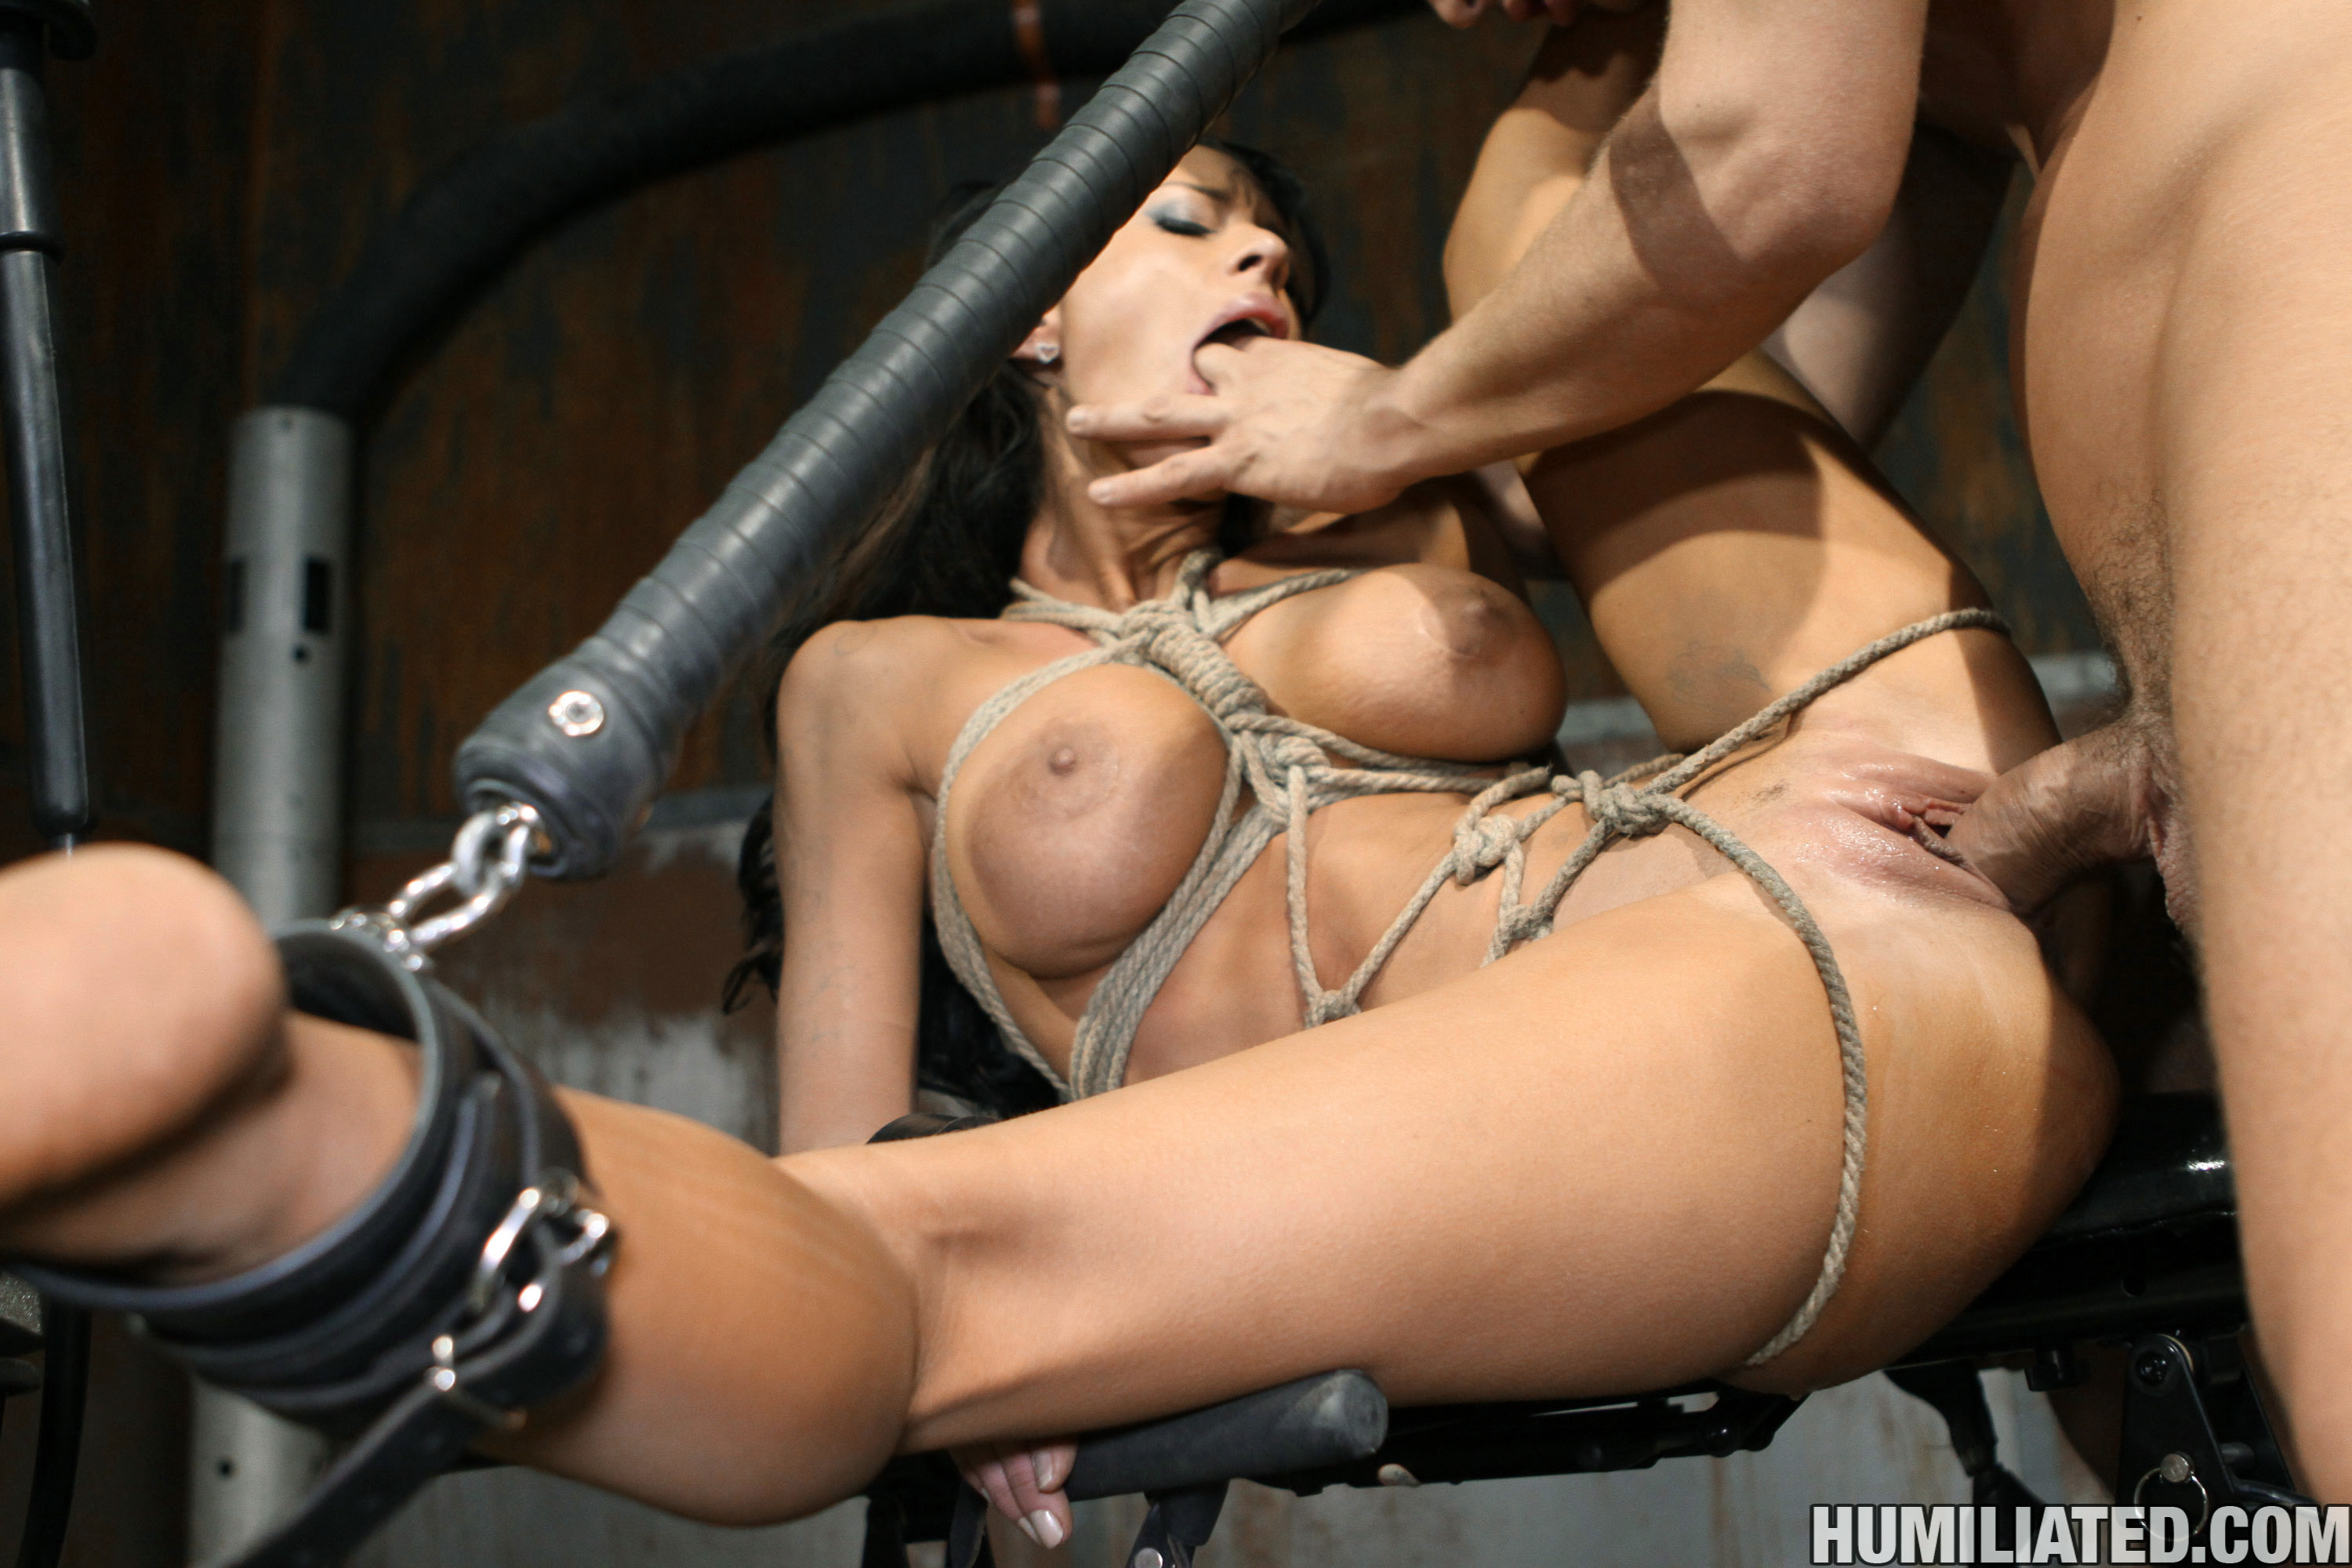 You Girls getting fucked with bondage join. All